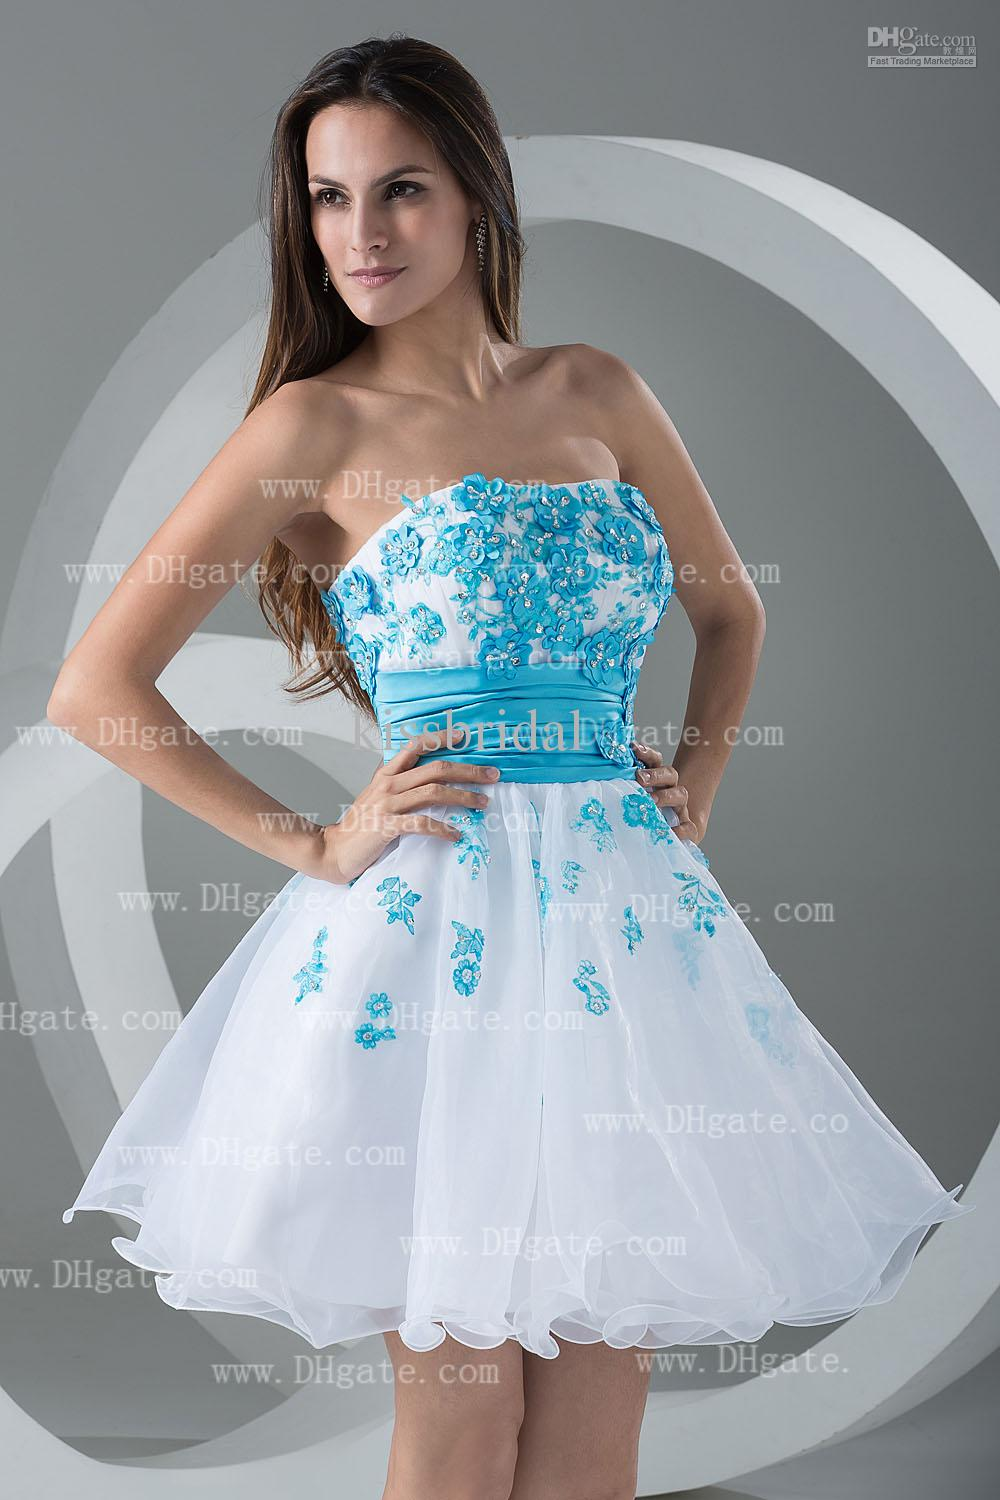 white and blue prom dress | Gommap Blog